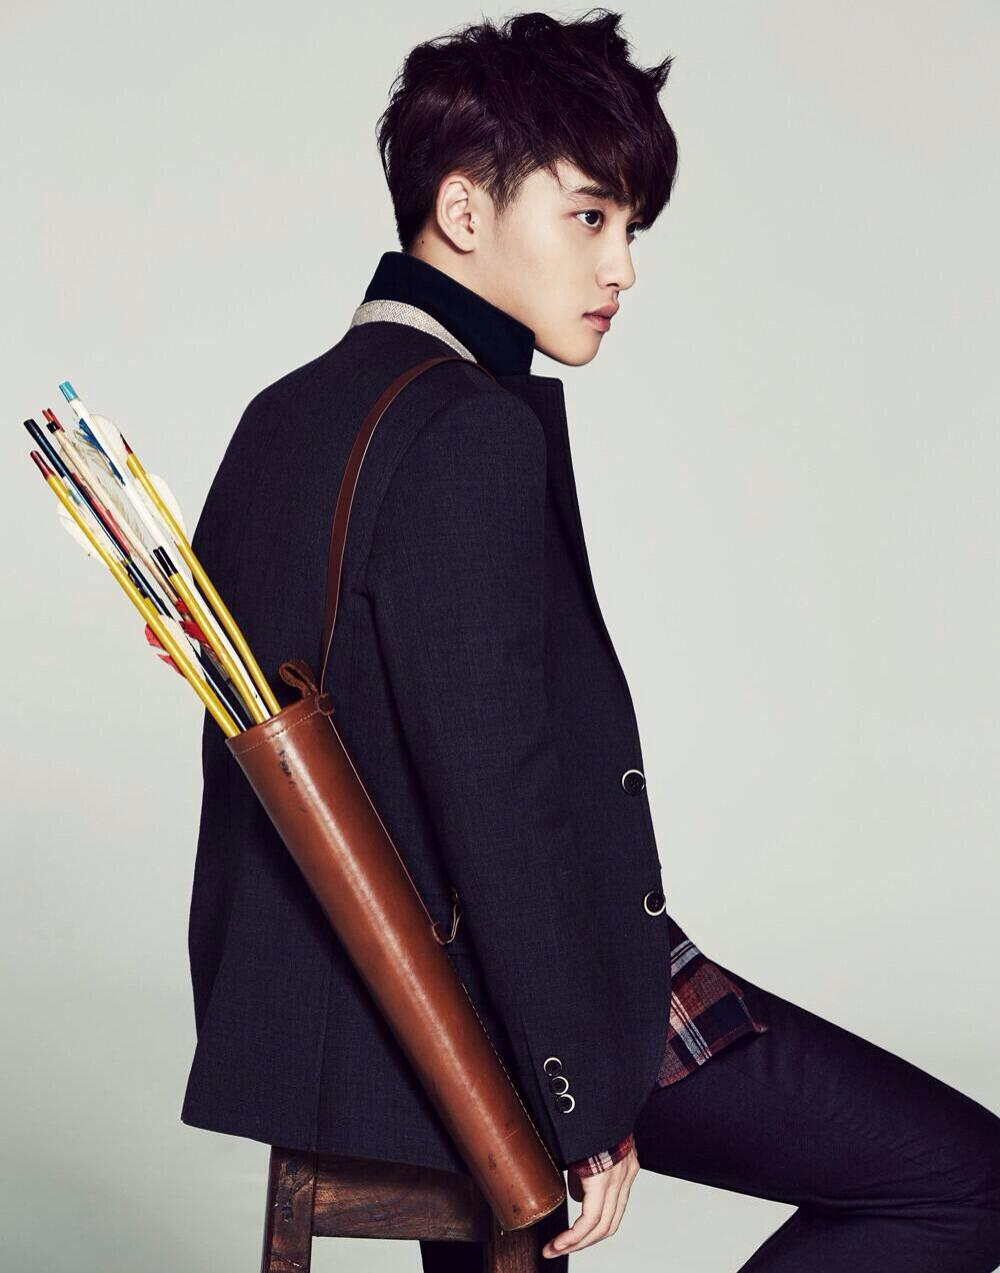 [EXO] 2014 Season Greeting - D.O http://t.co/LgmumbfPev